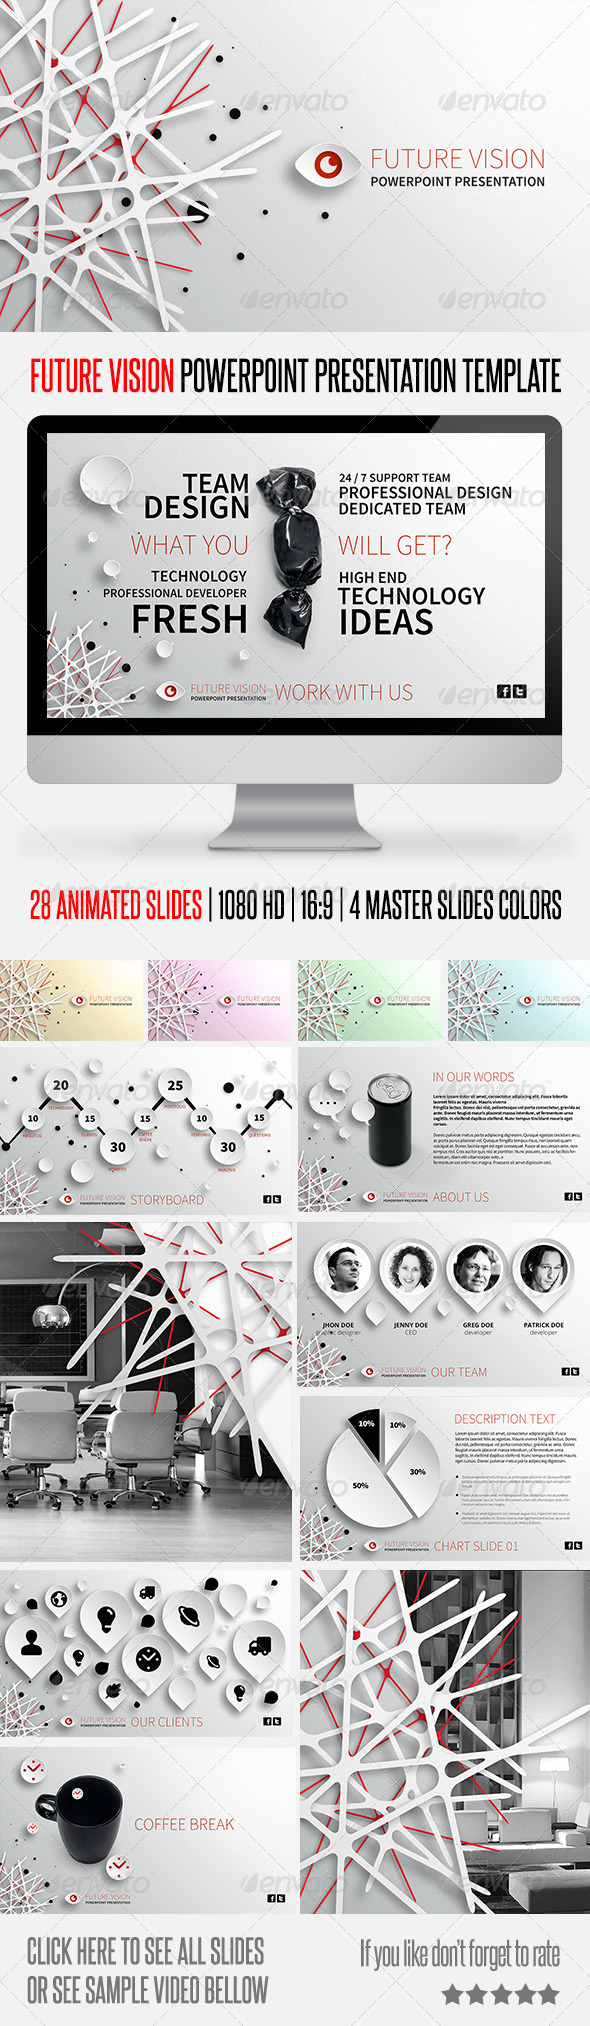 GraphicRiver Future Vision Powerpoint Presentation Template 5913913